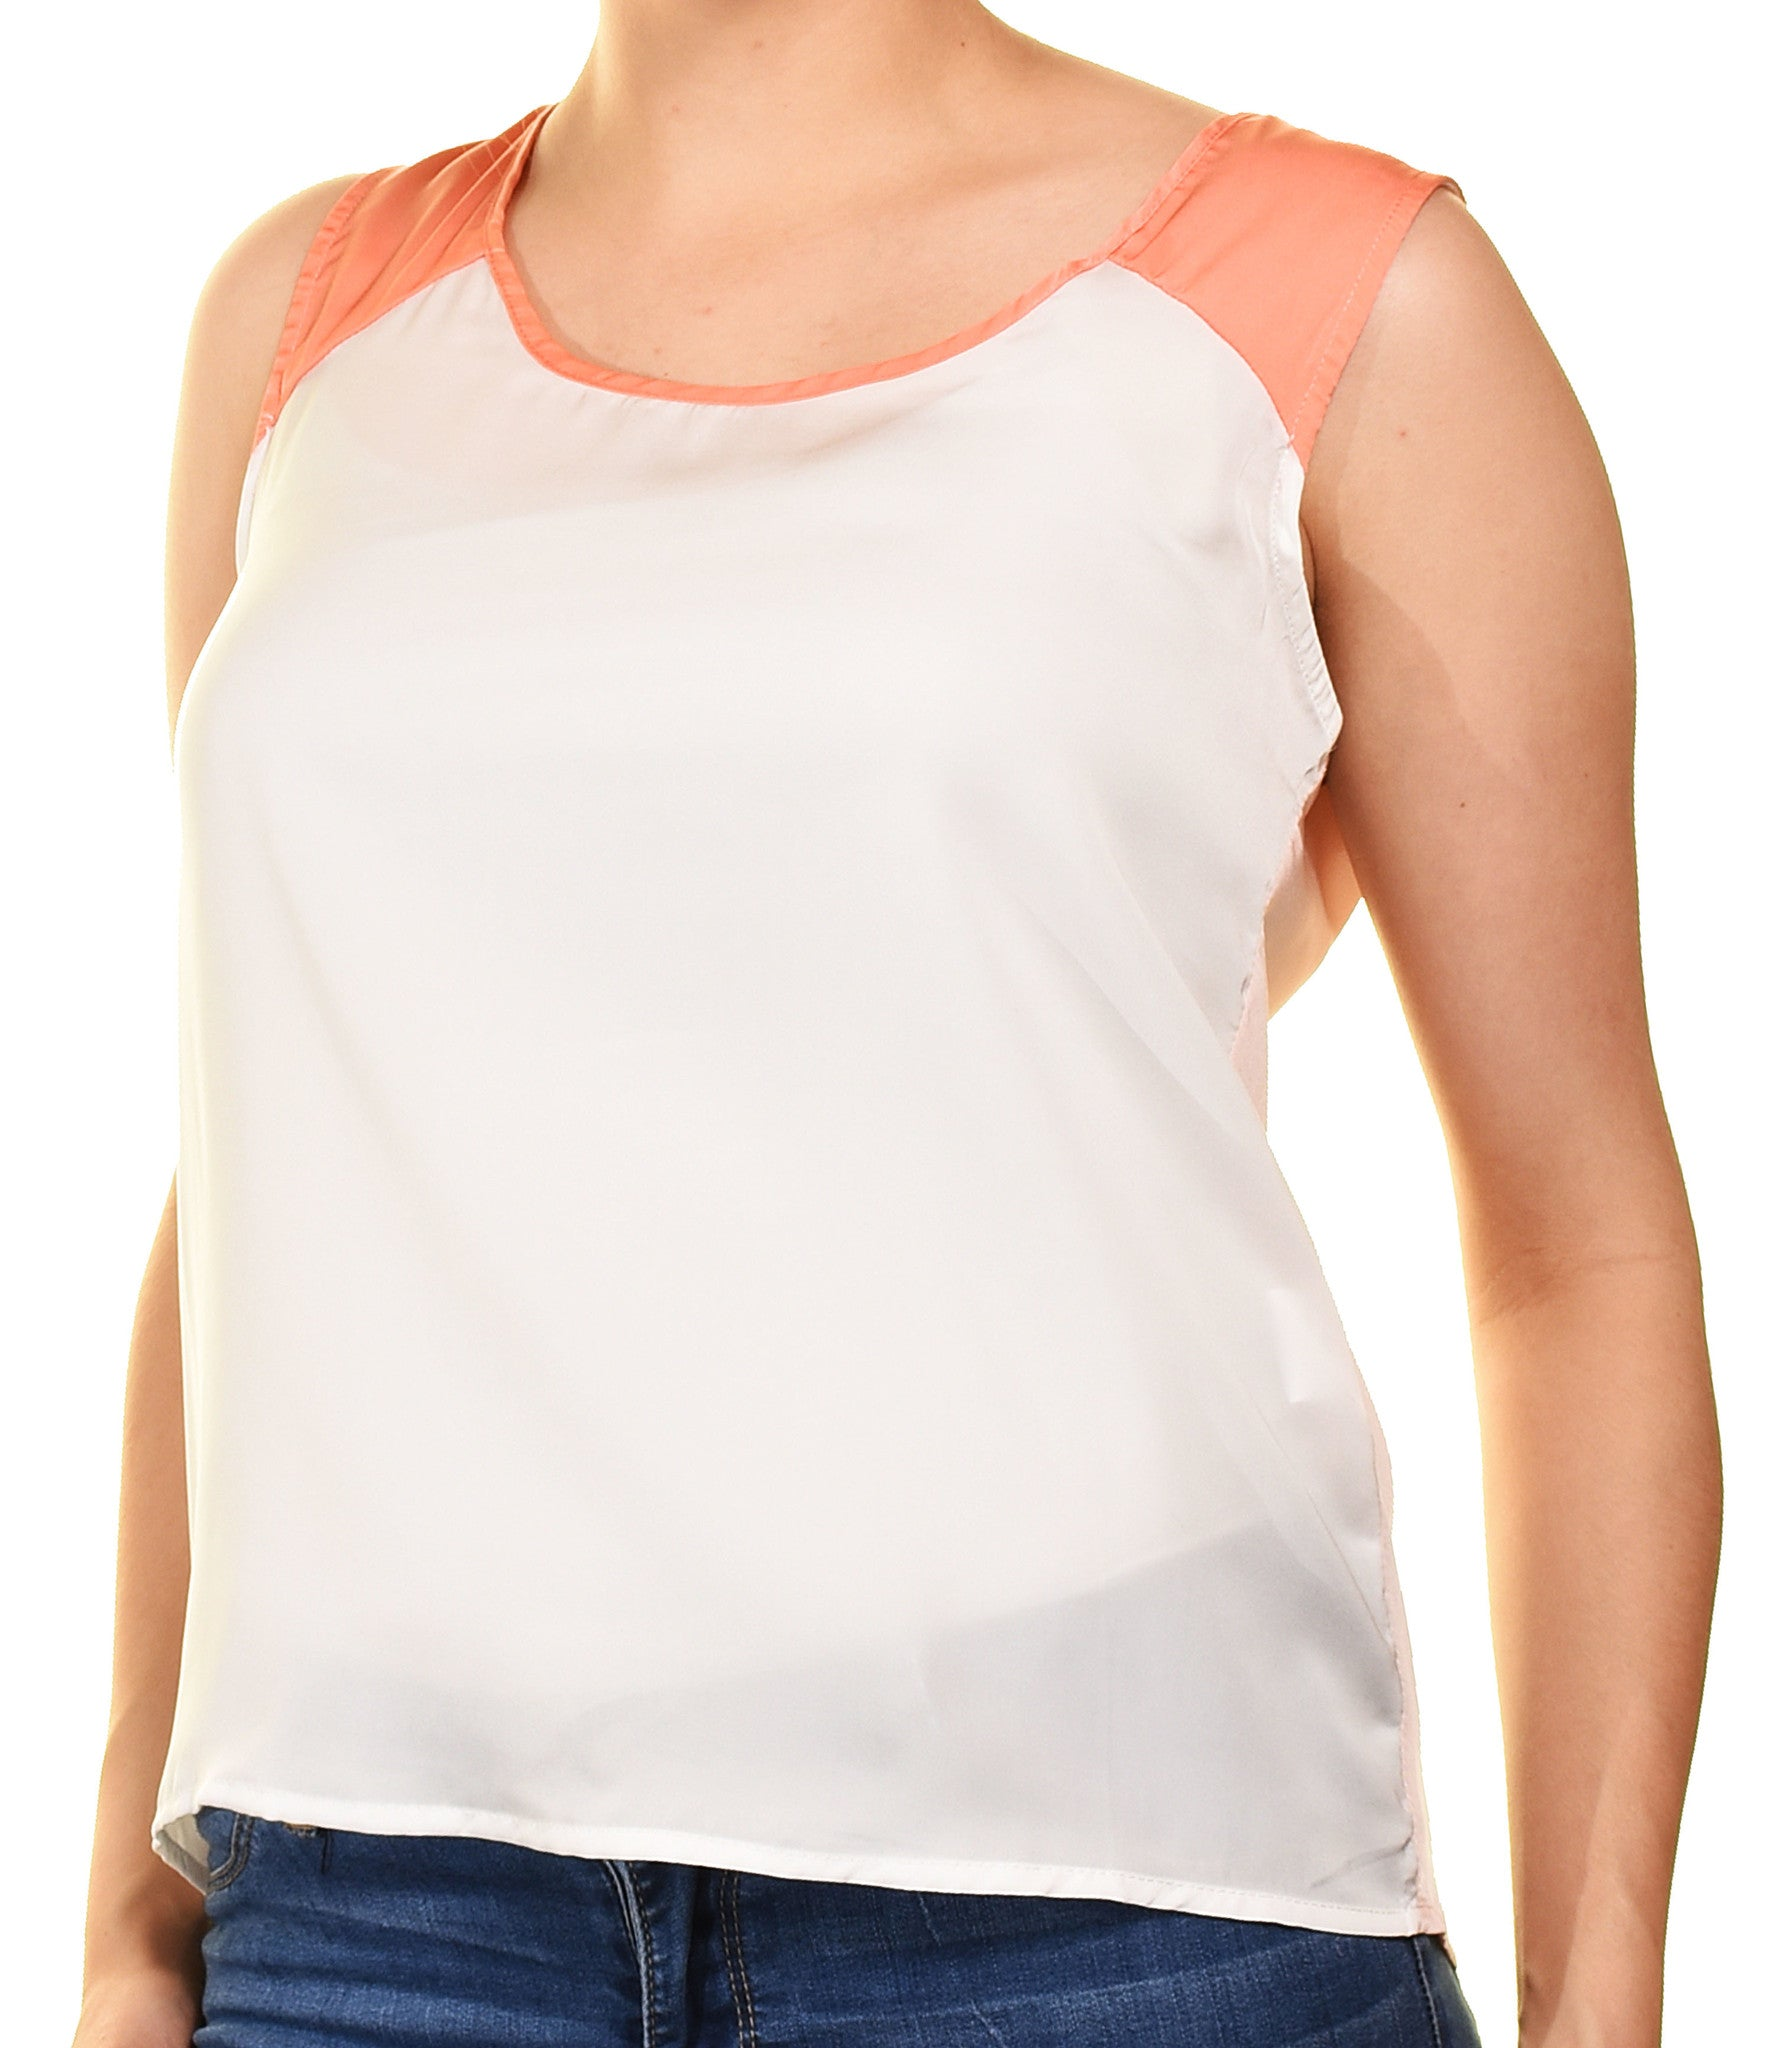 Grifflin Paris Colorblocked Cropped Shirt (Coral White),Shirts,Grifflin Paris - Discount Divas